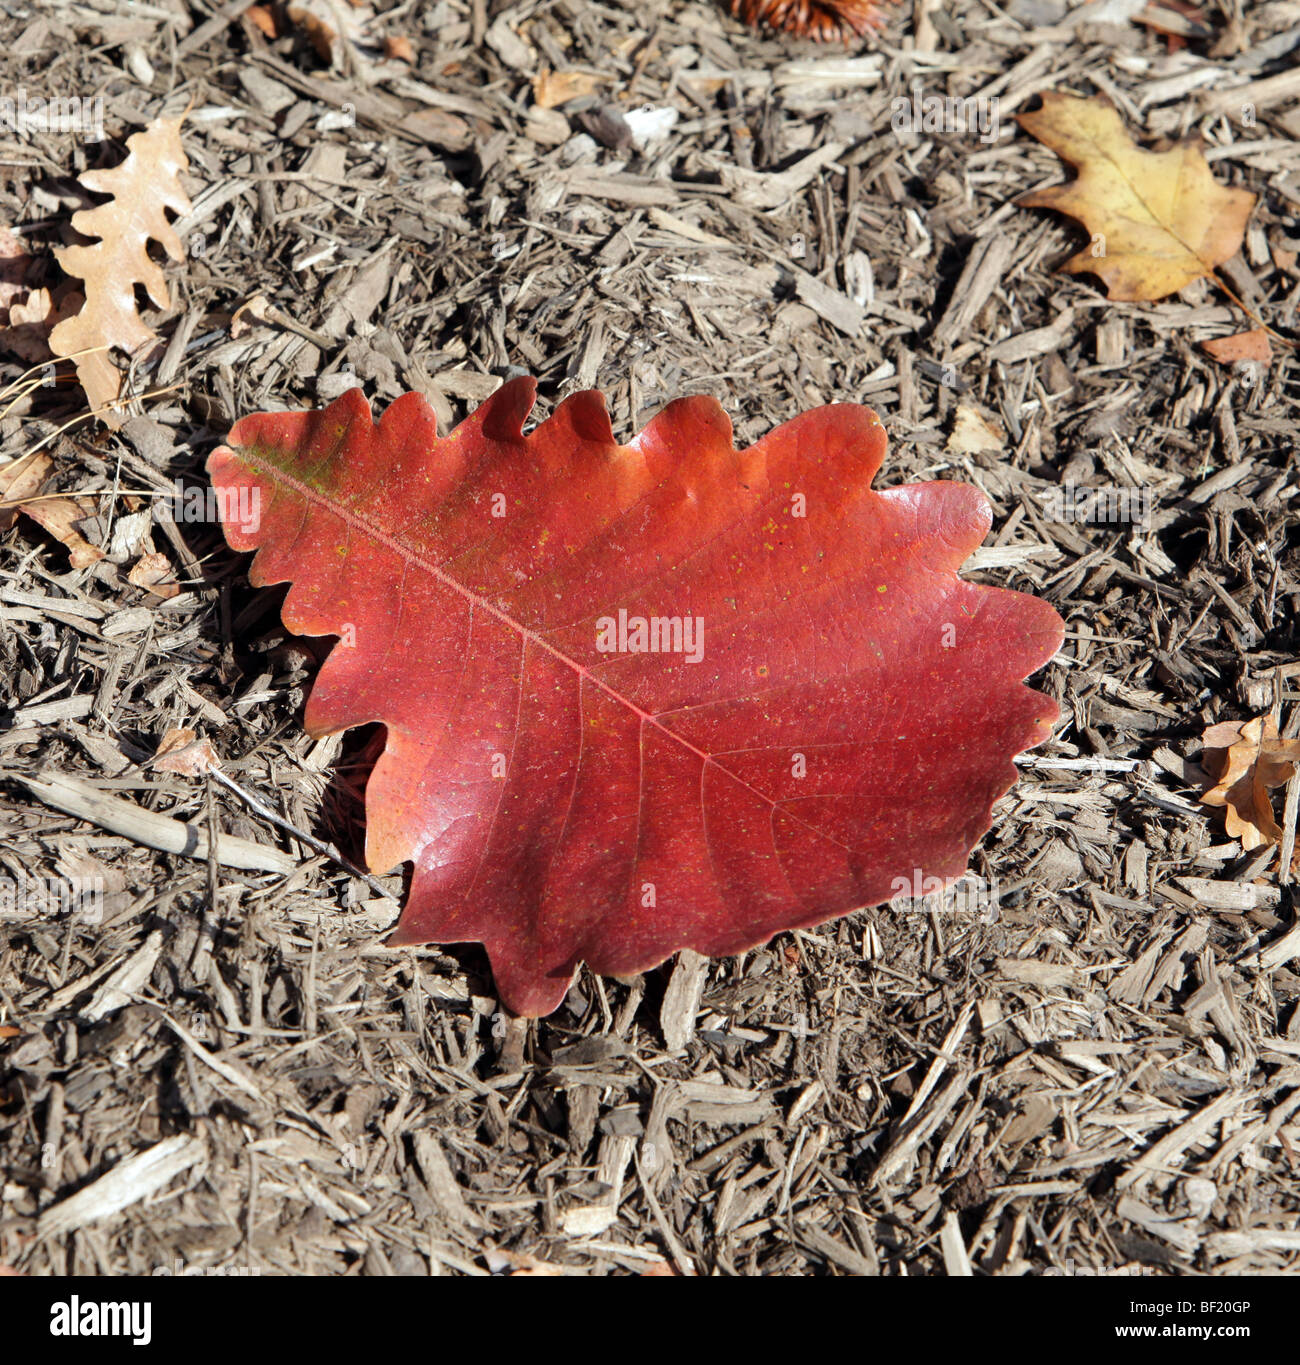 A single large leaf of a Quercus Dentata Emperor Oak Fagaceae Japan Korea China. Laying on bed of mulch. - Stock Image